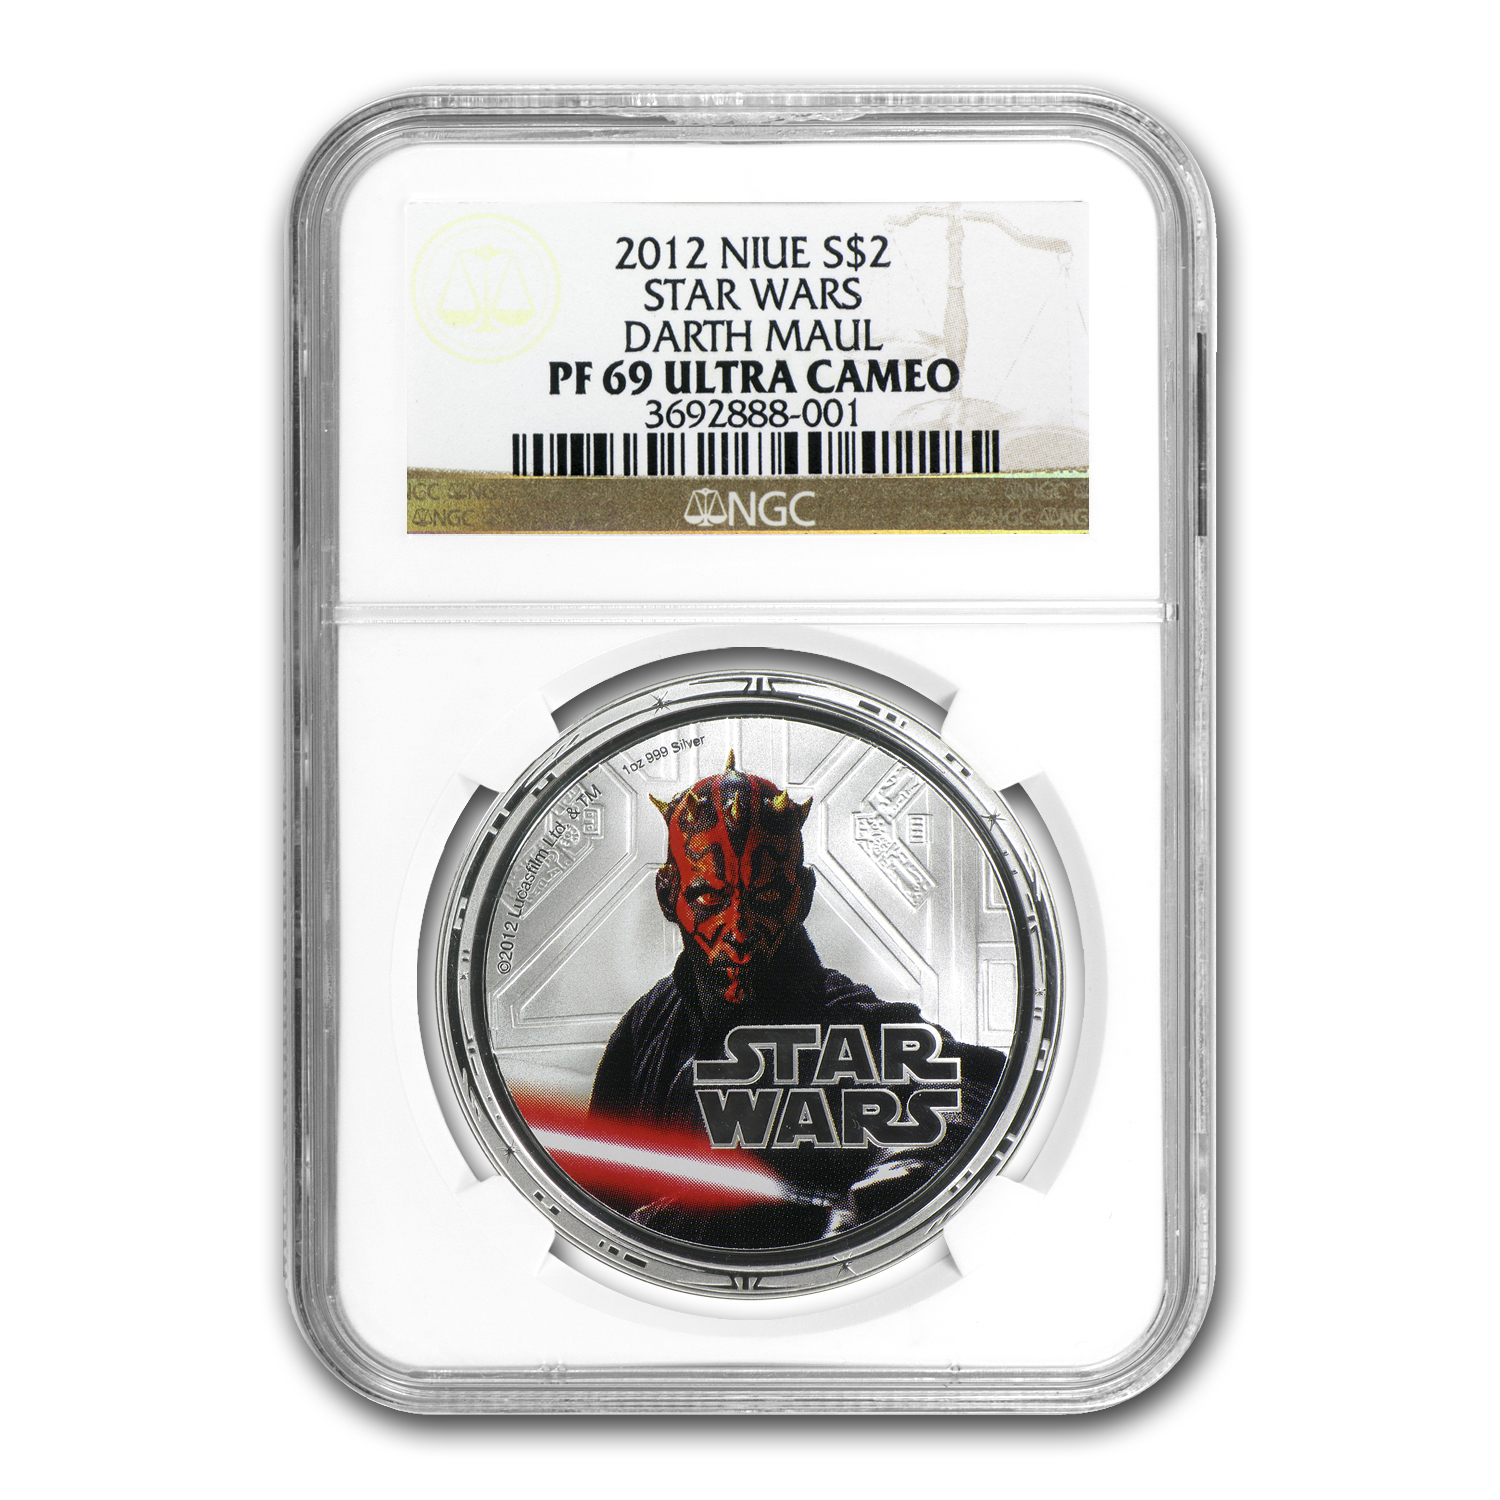 2012 Star Wars 1oz Silver $2 Niue - Darth Maul NGC PF-69 UCAM